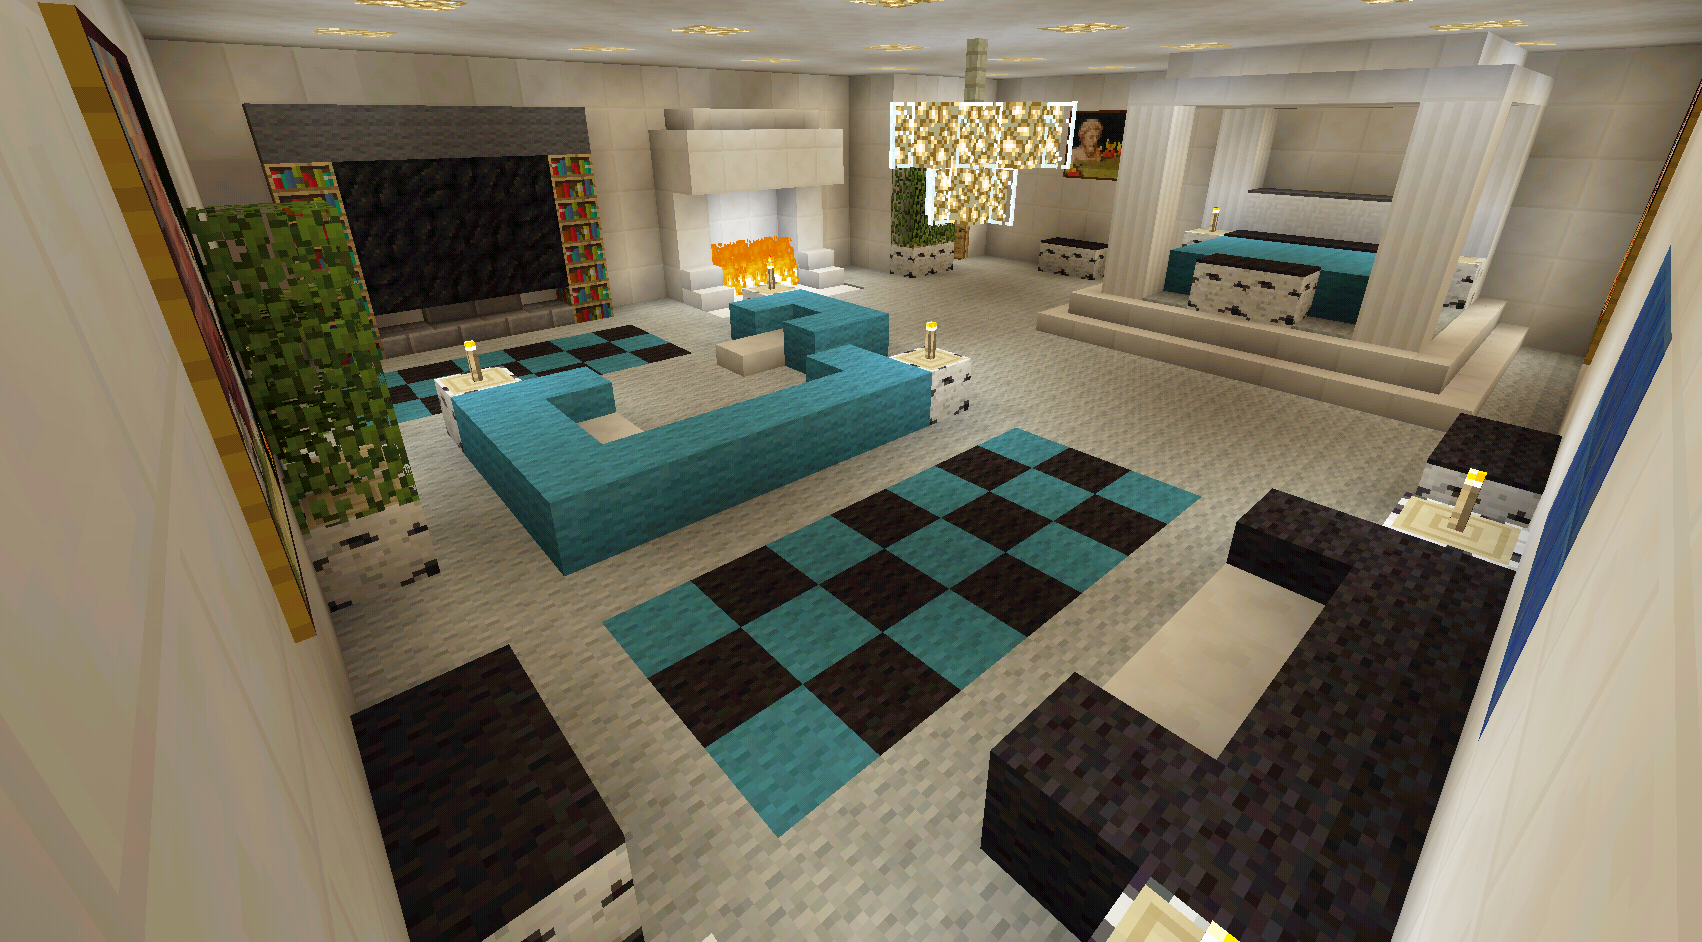 Minecraft bedroom with living area furniture and canopy for Minecraft living room designs